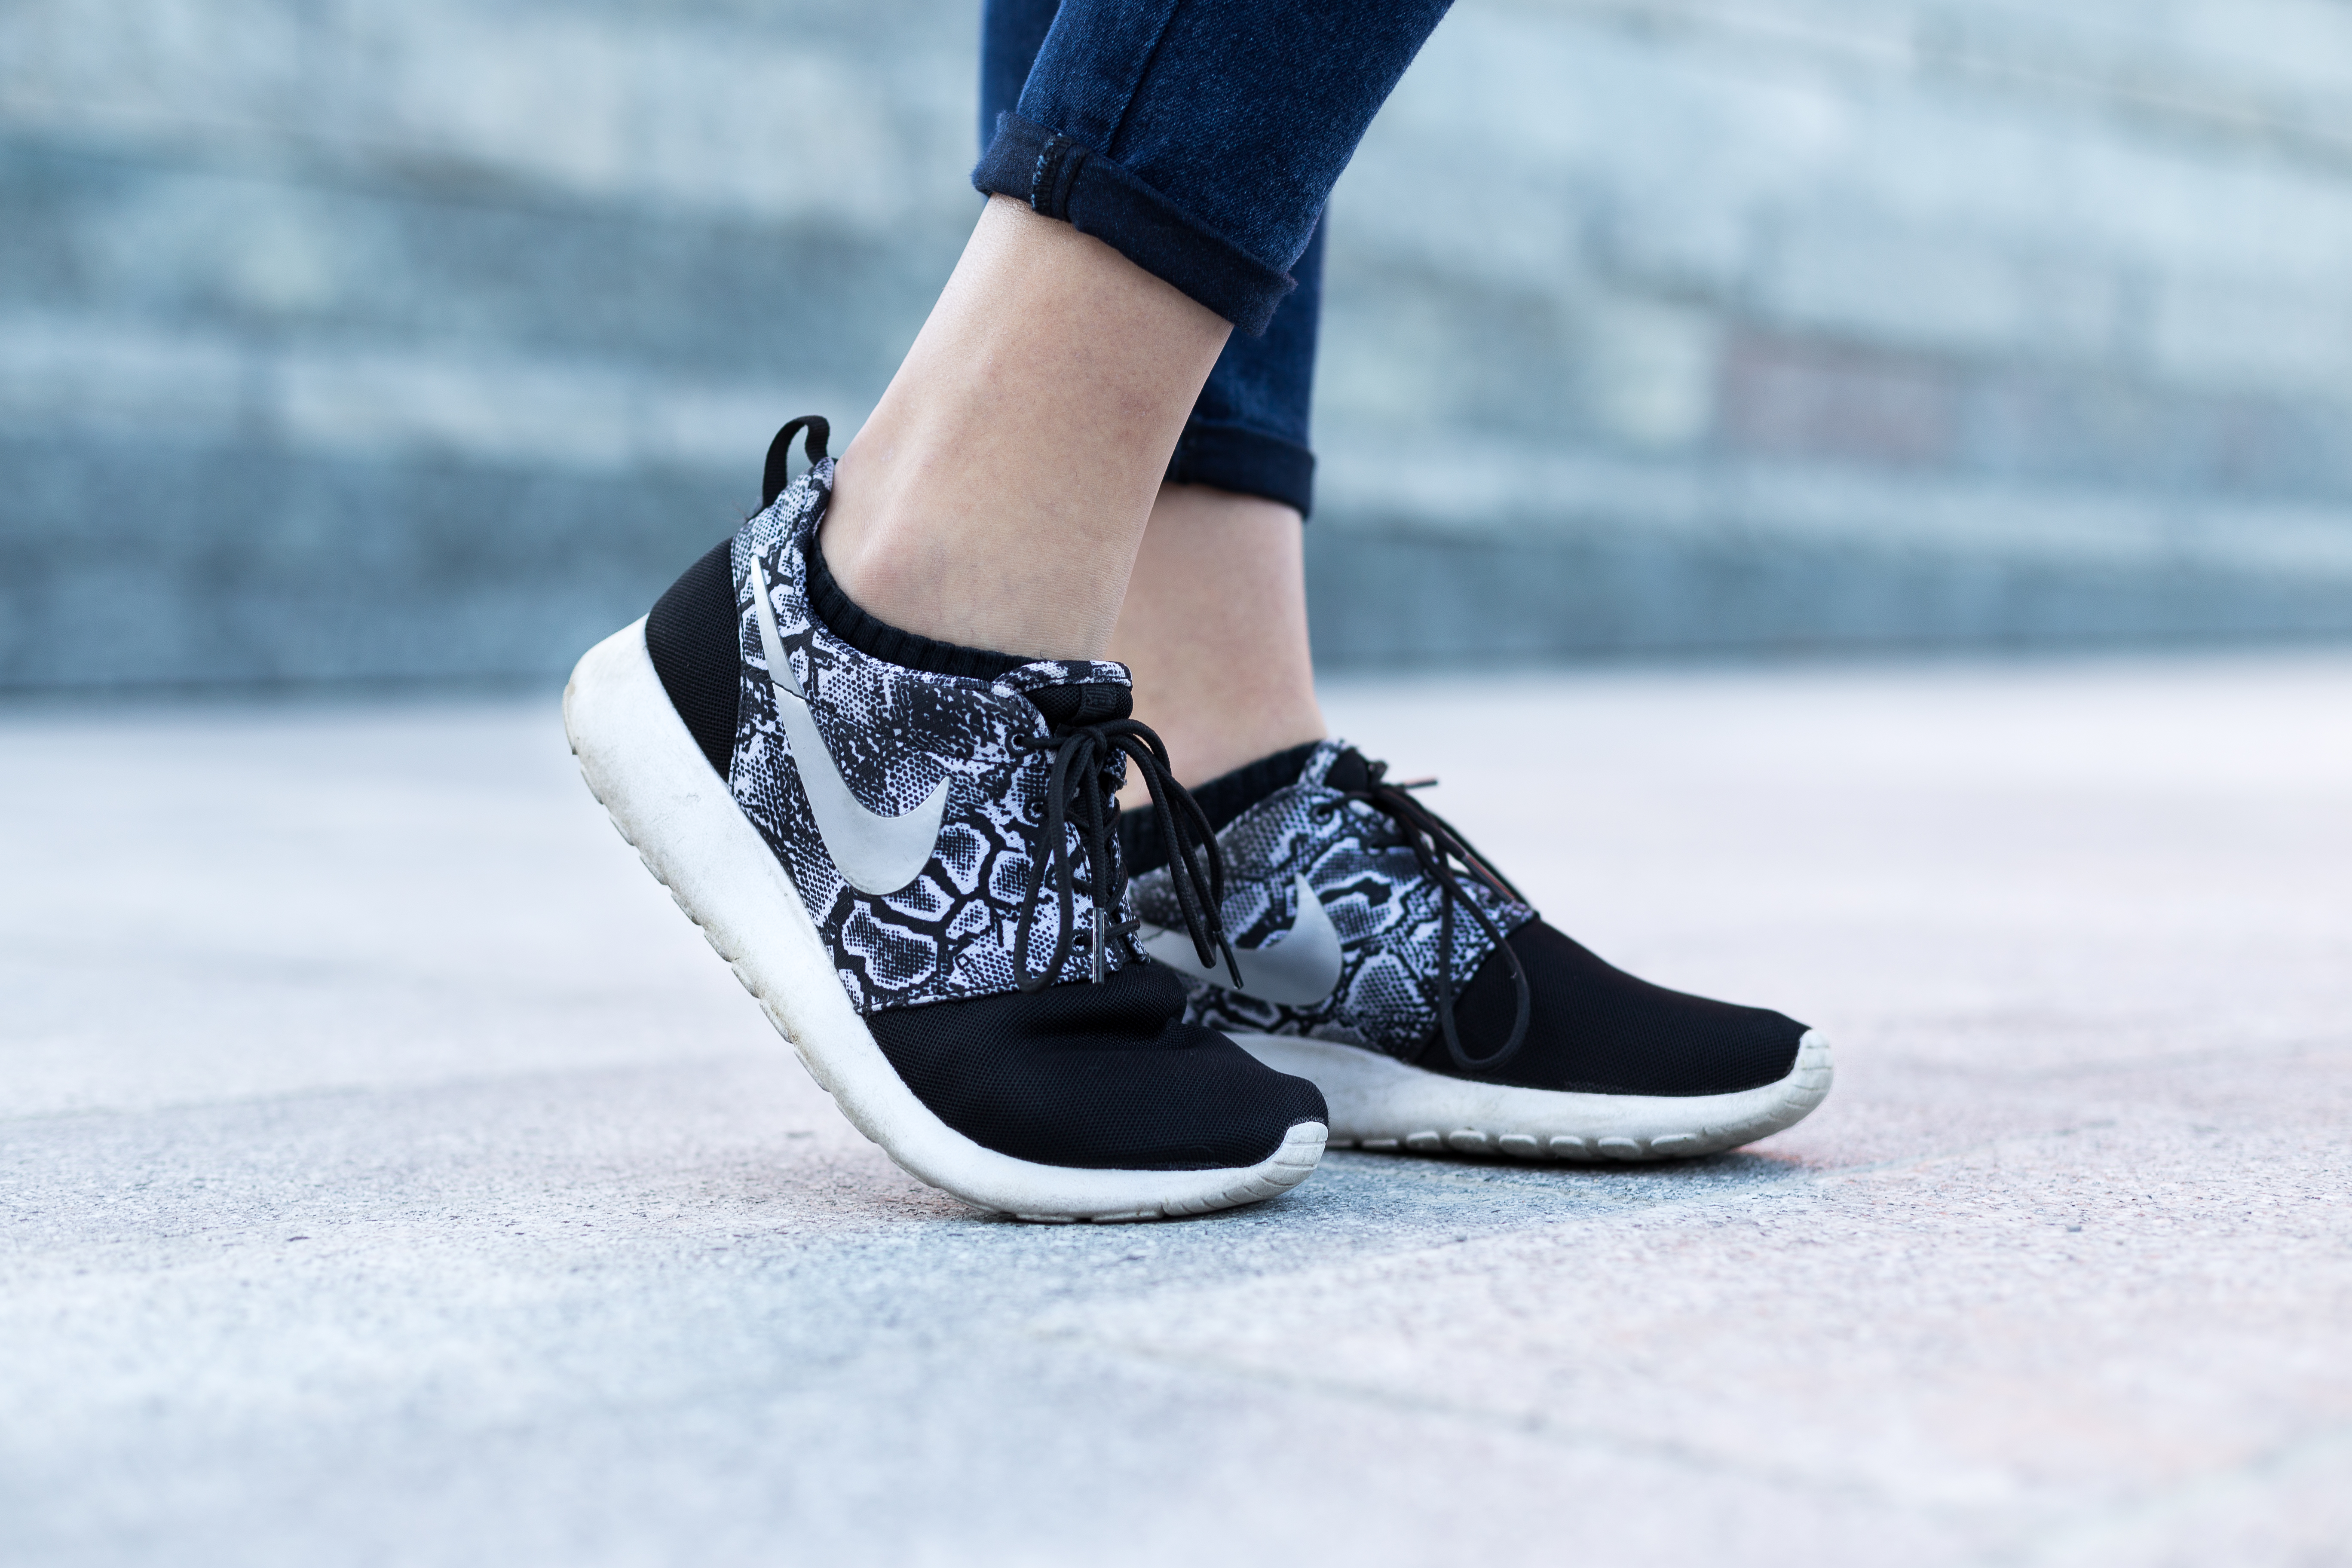 Image Of Peoples Shoes Running